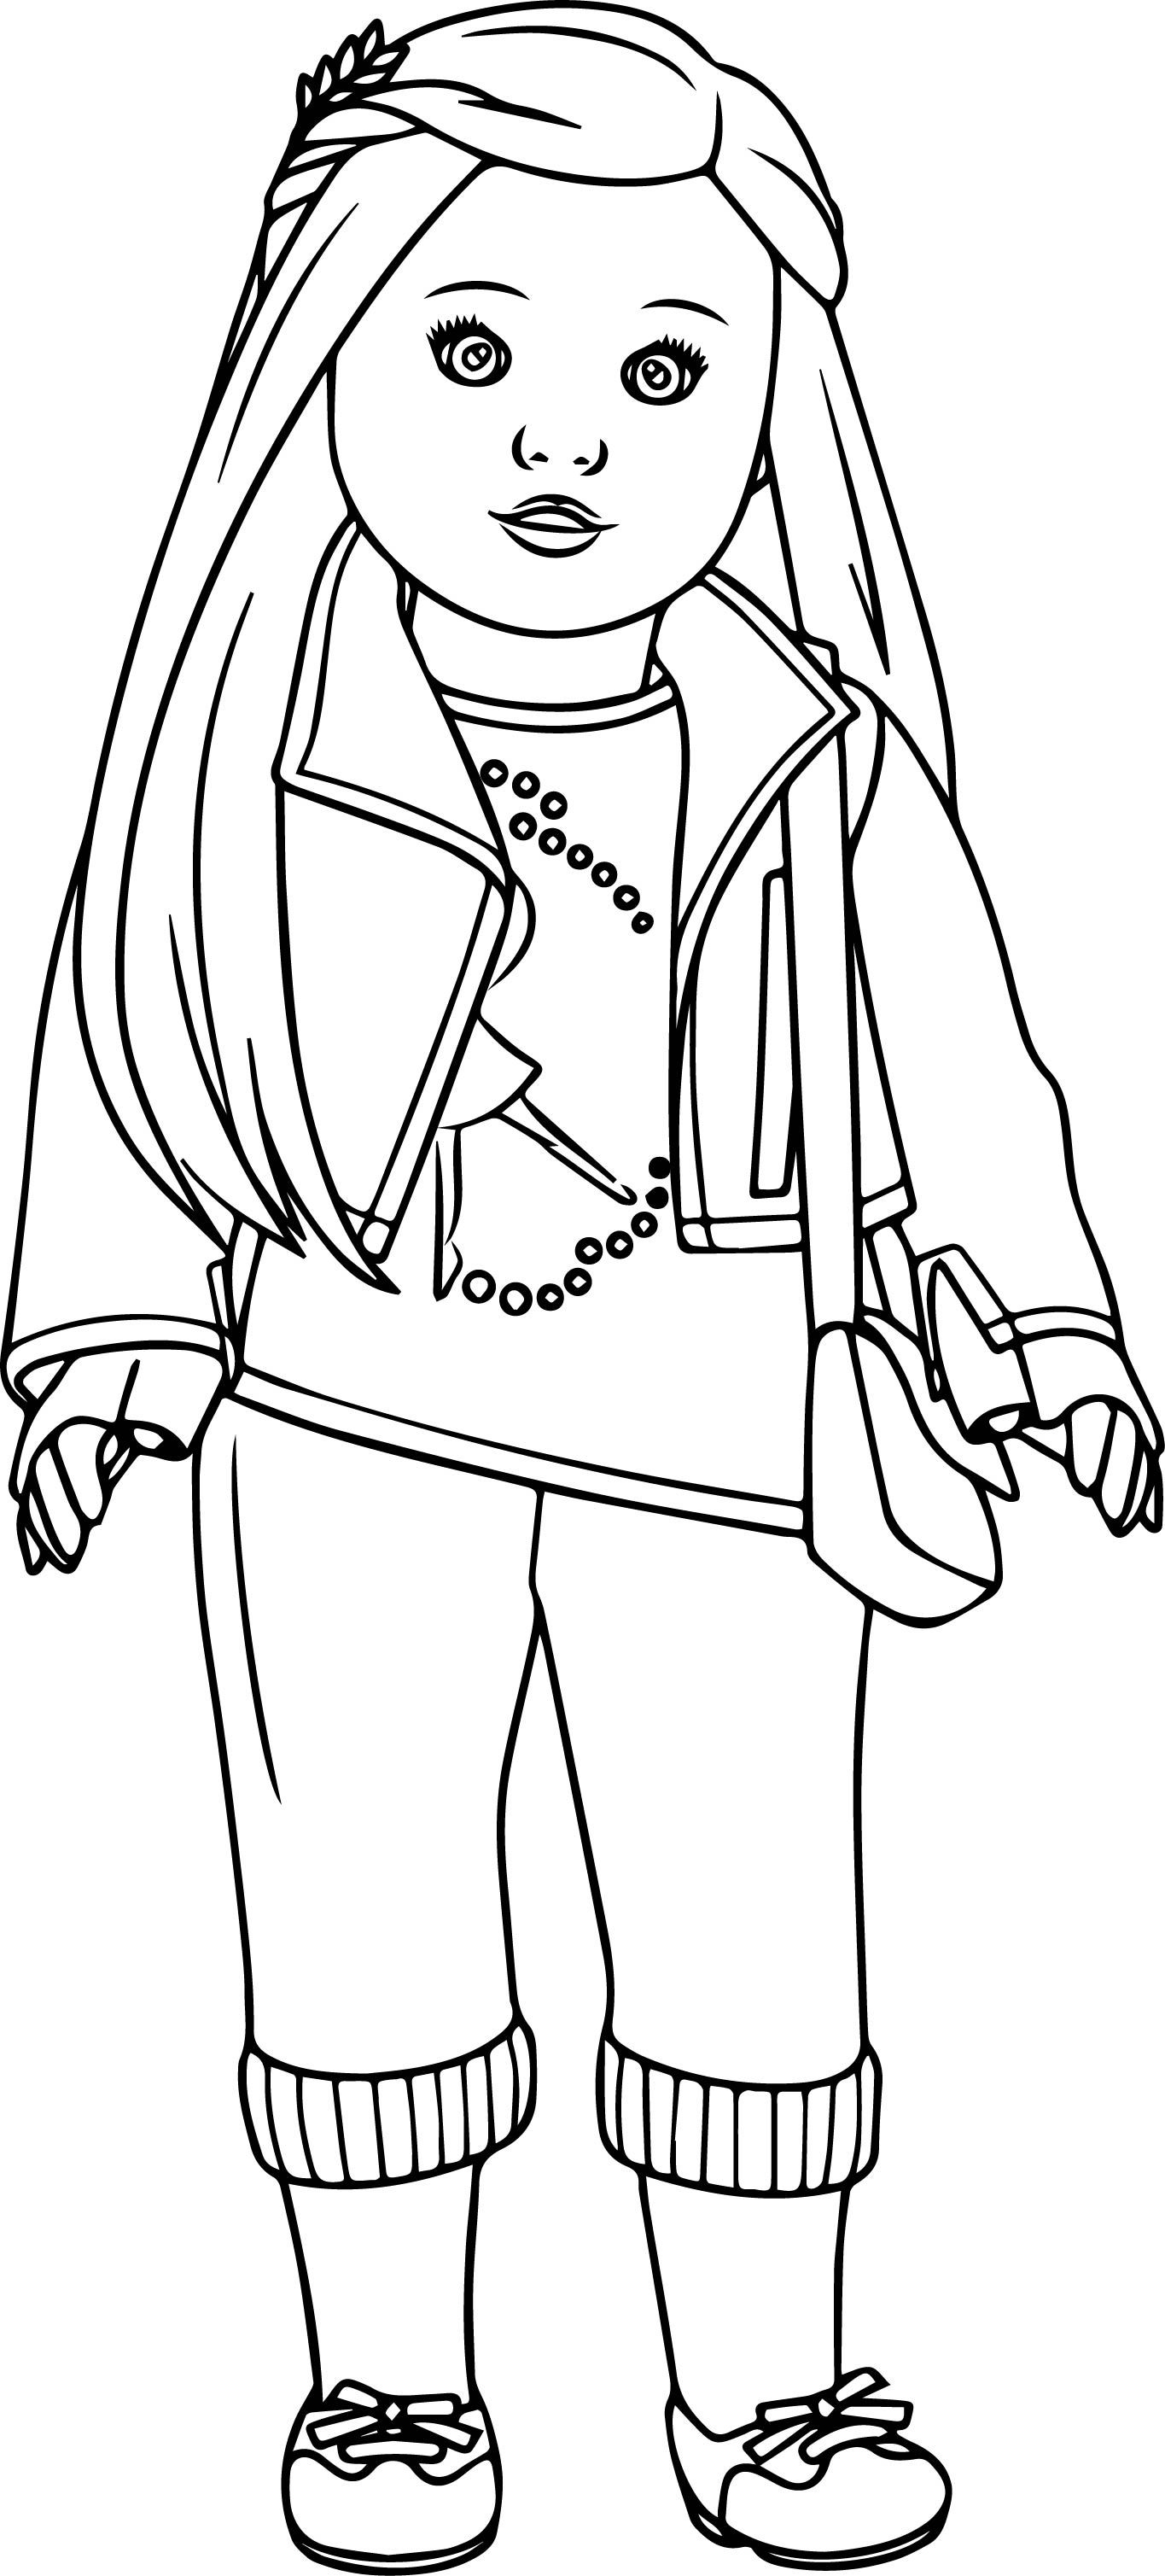 american girl coloring page my cup overflows kit kittredge an american girl girl page american coloring